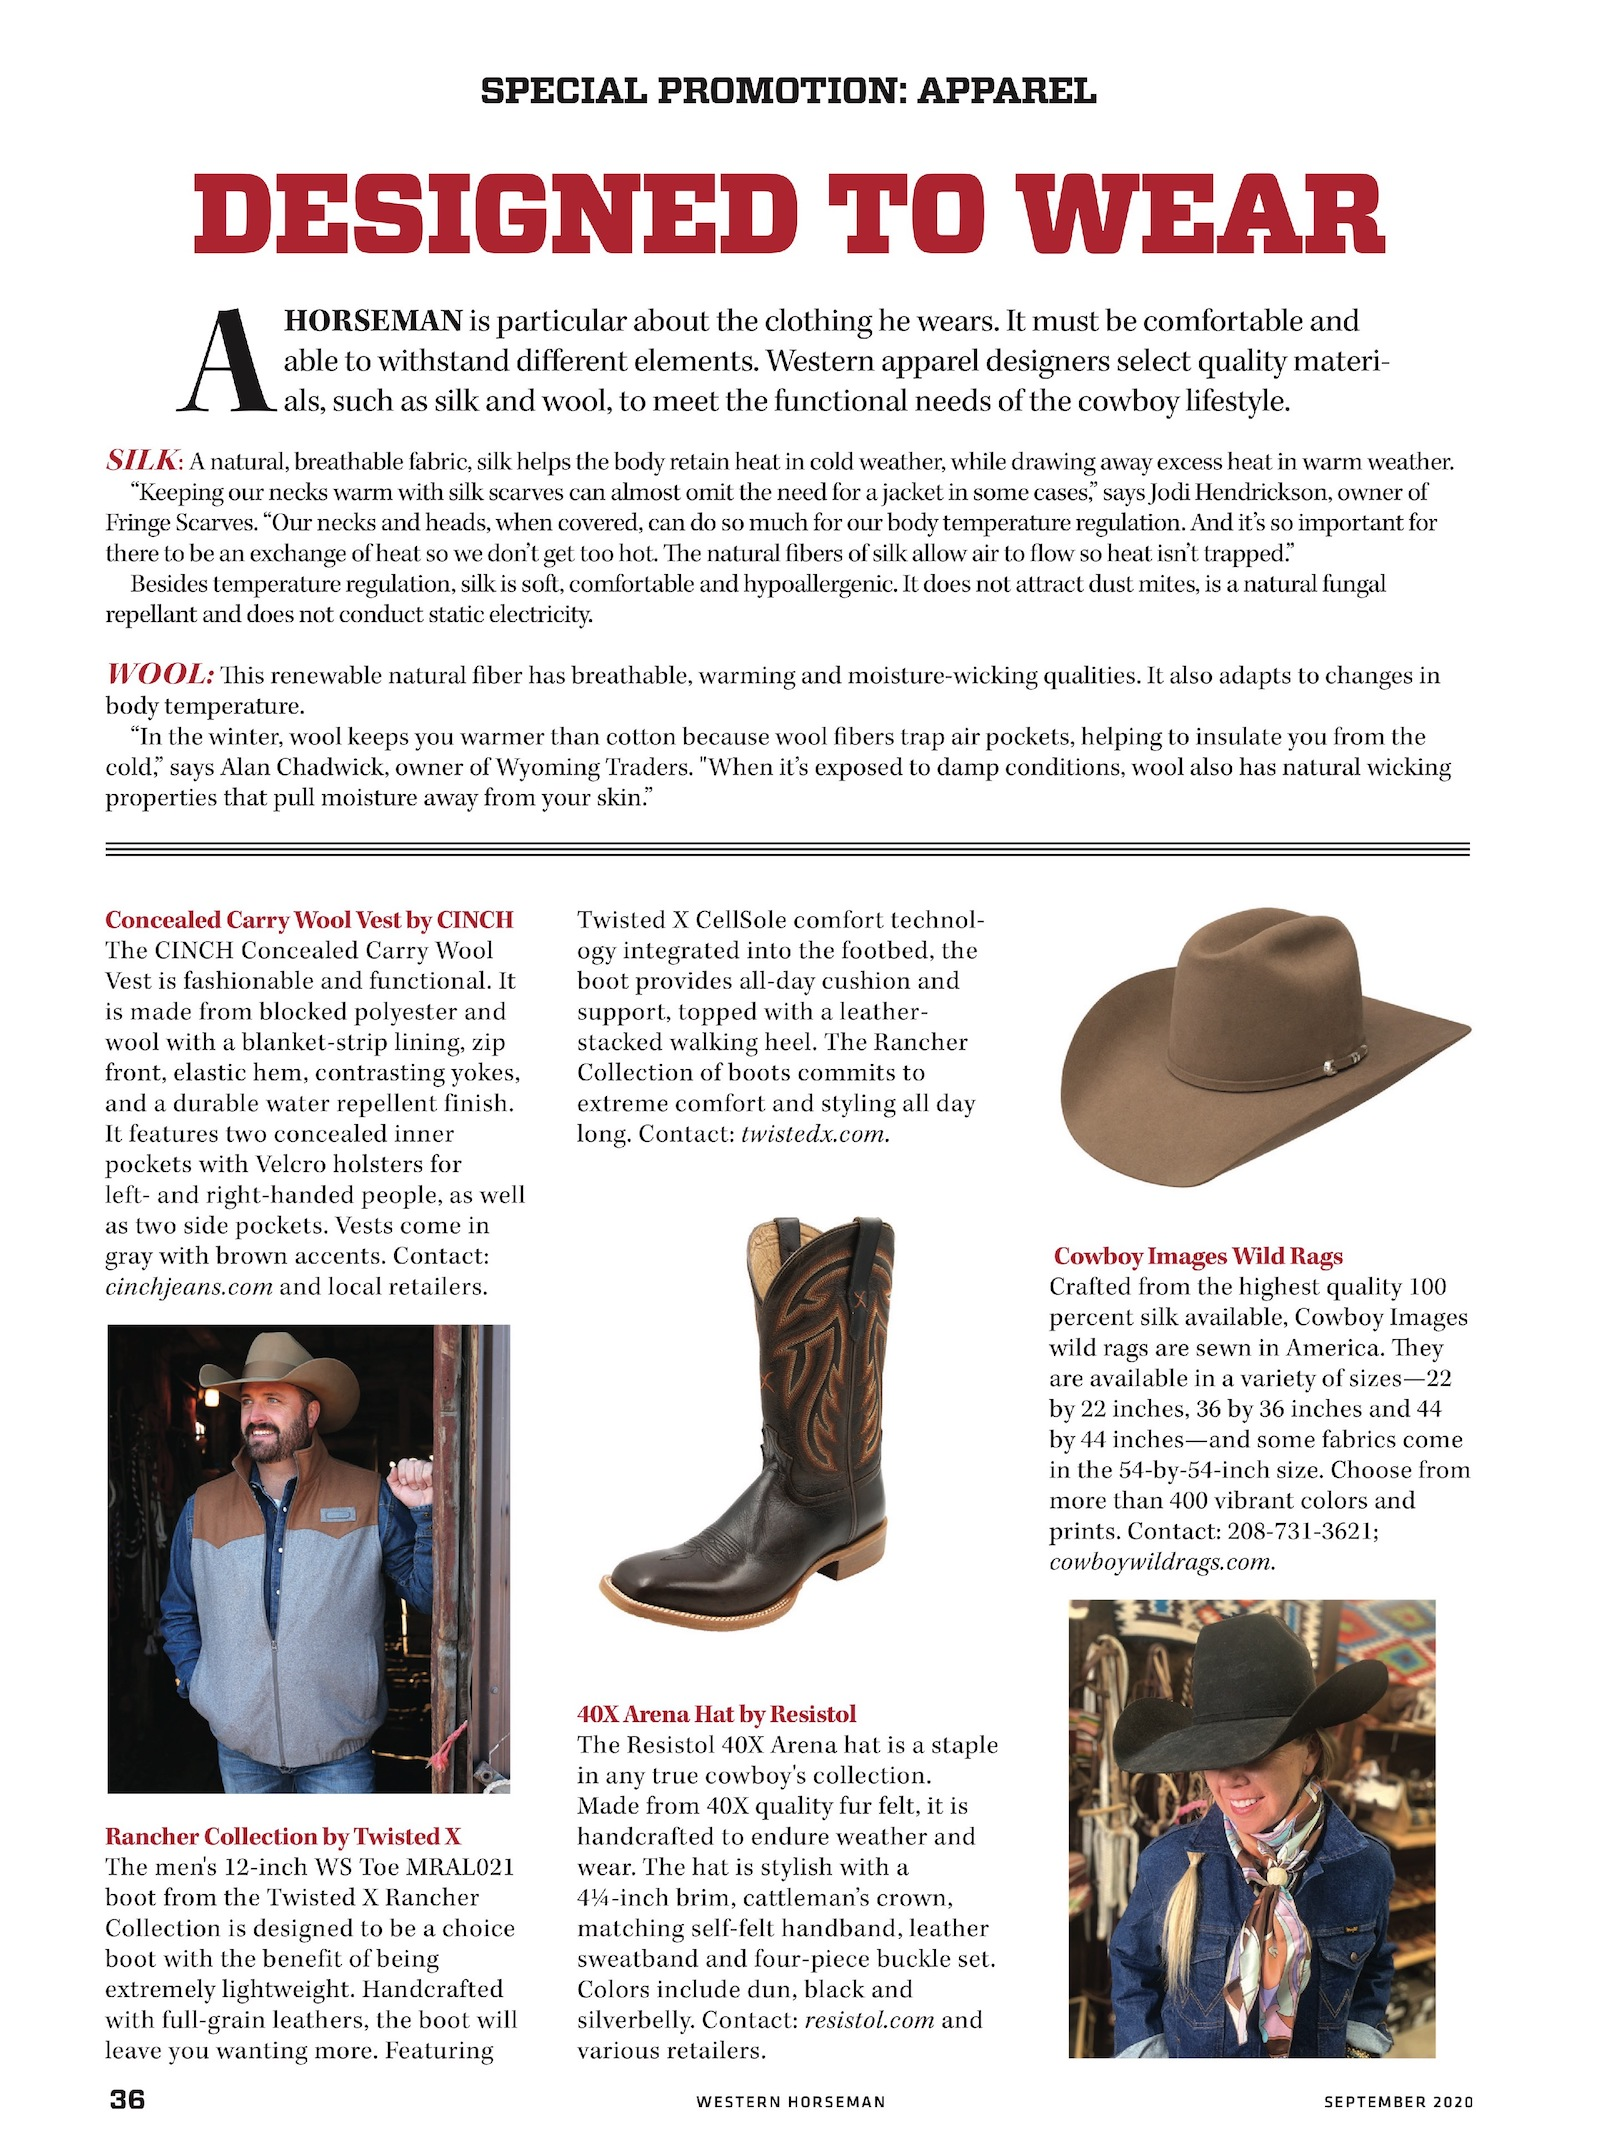 Western Apparel special advertising section page 1 from Western Horseman magazine September 2020